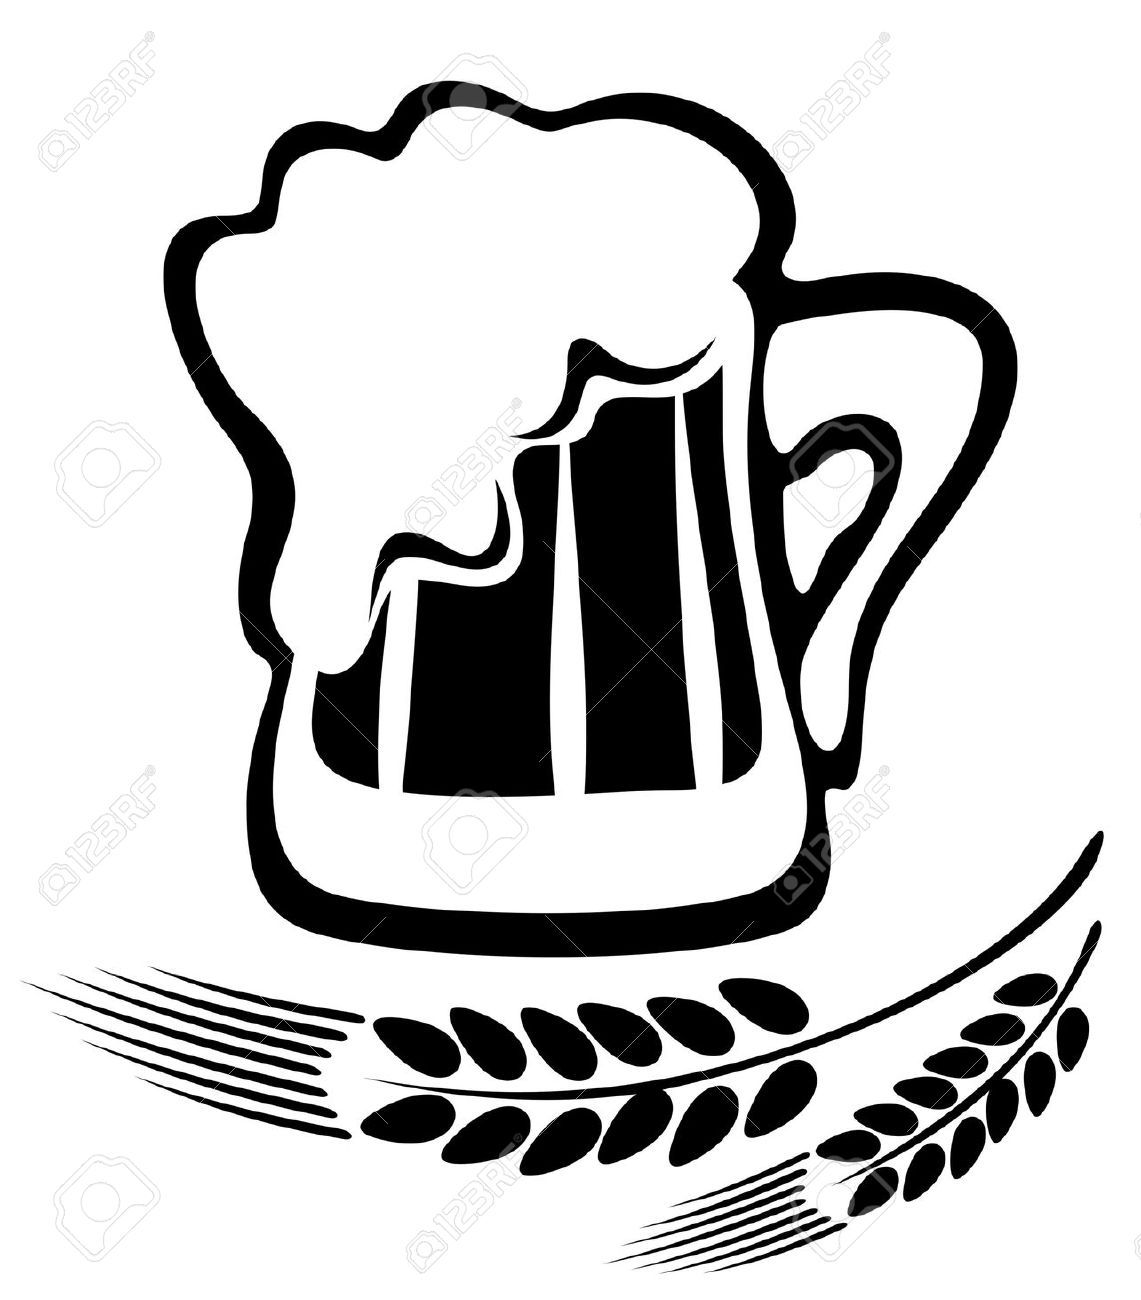 Beer and wine clipart black and white svg transparent library Beer Mugs Clipart Black And White images | Brews & Brushes | Beer ... svg transparent library